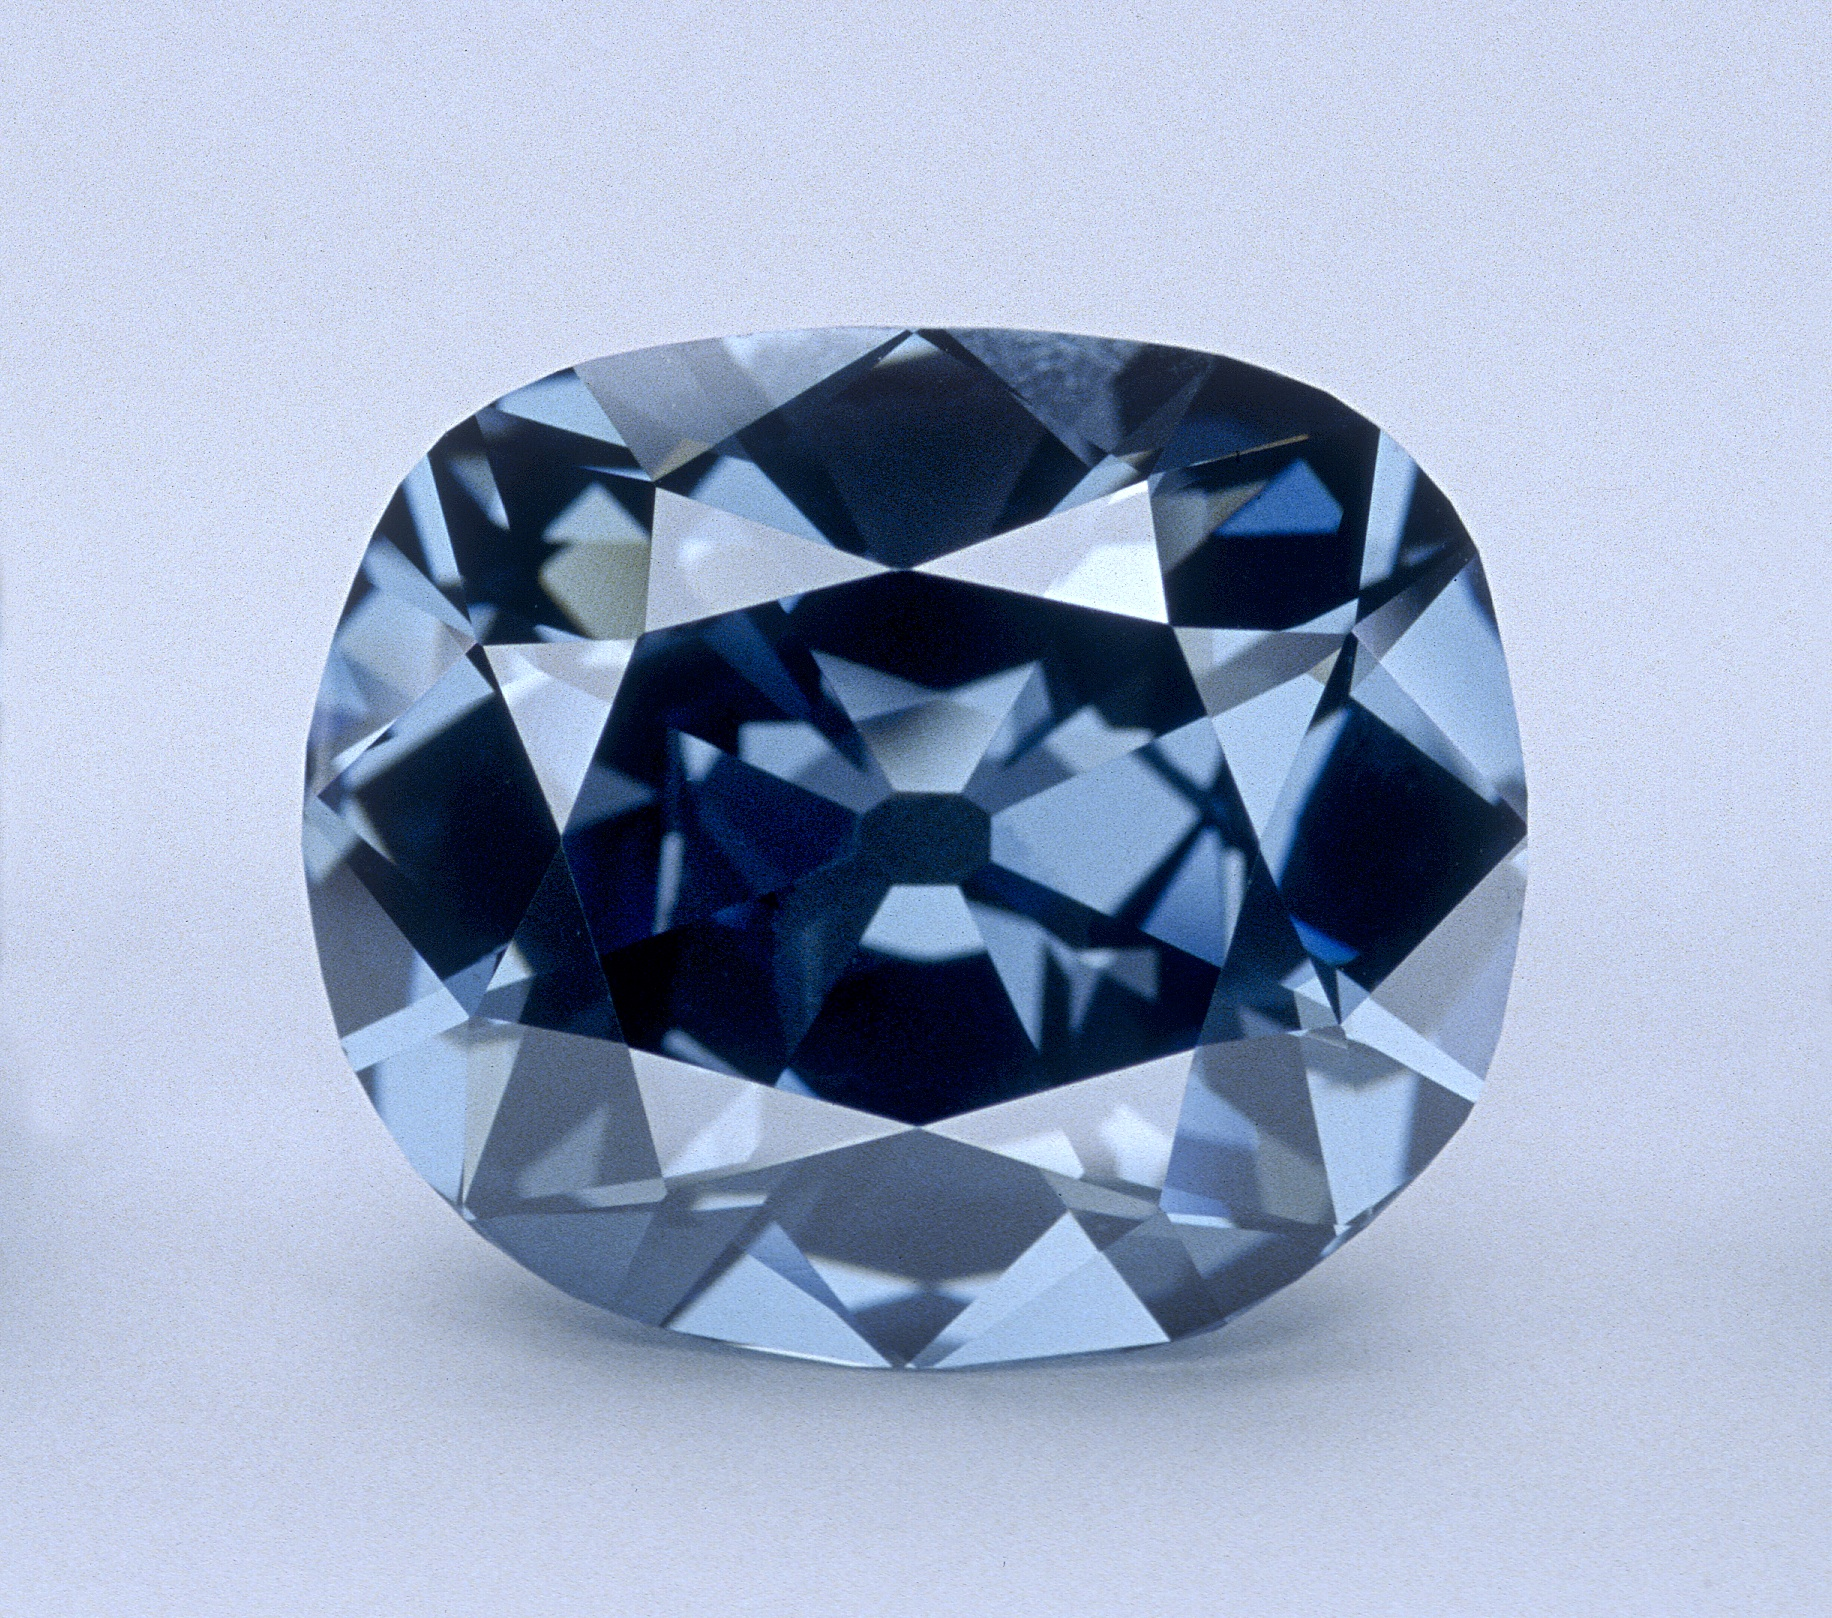 blue a one and diamond diamonds here on red choose s rare colored information the